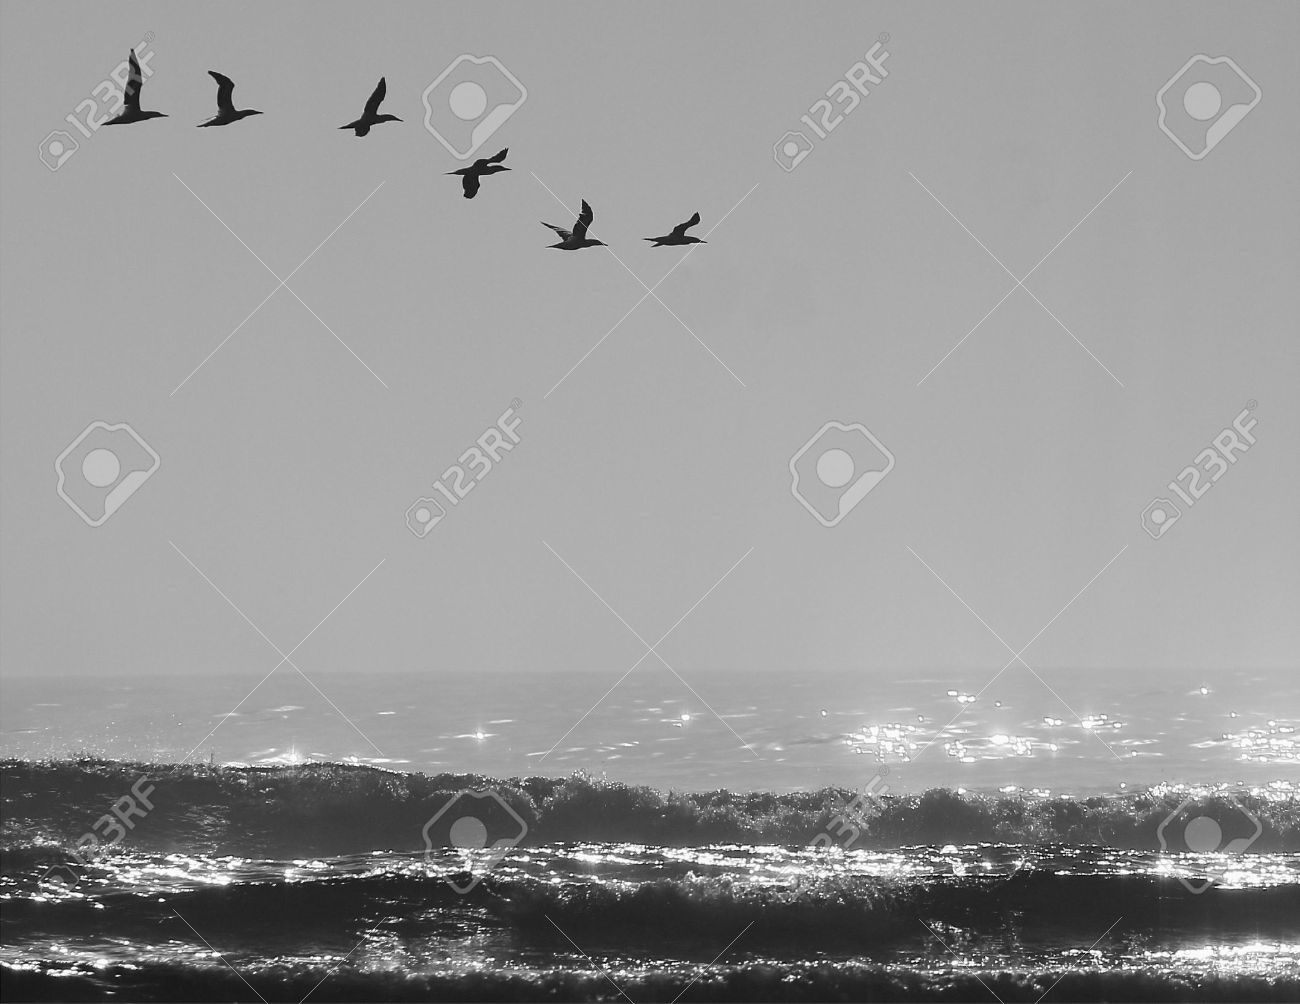 shimmering sea with a small flock of birds flying above Stock Photo - 8748072